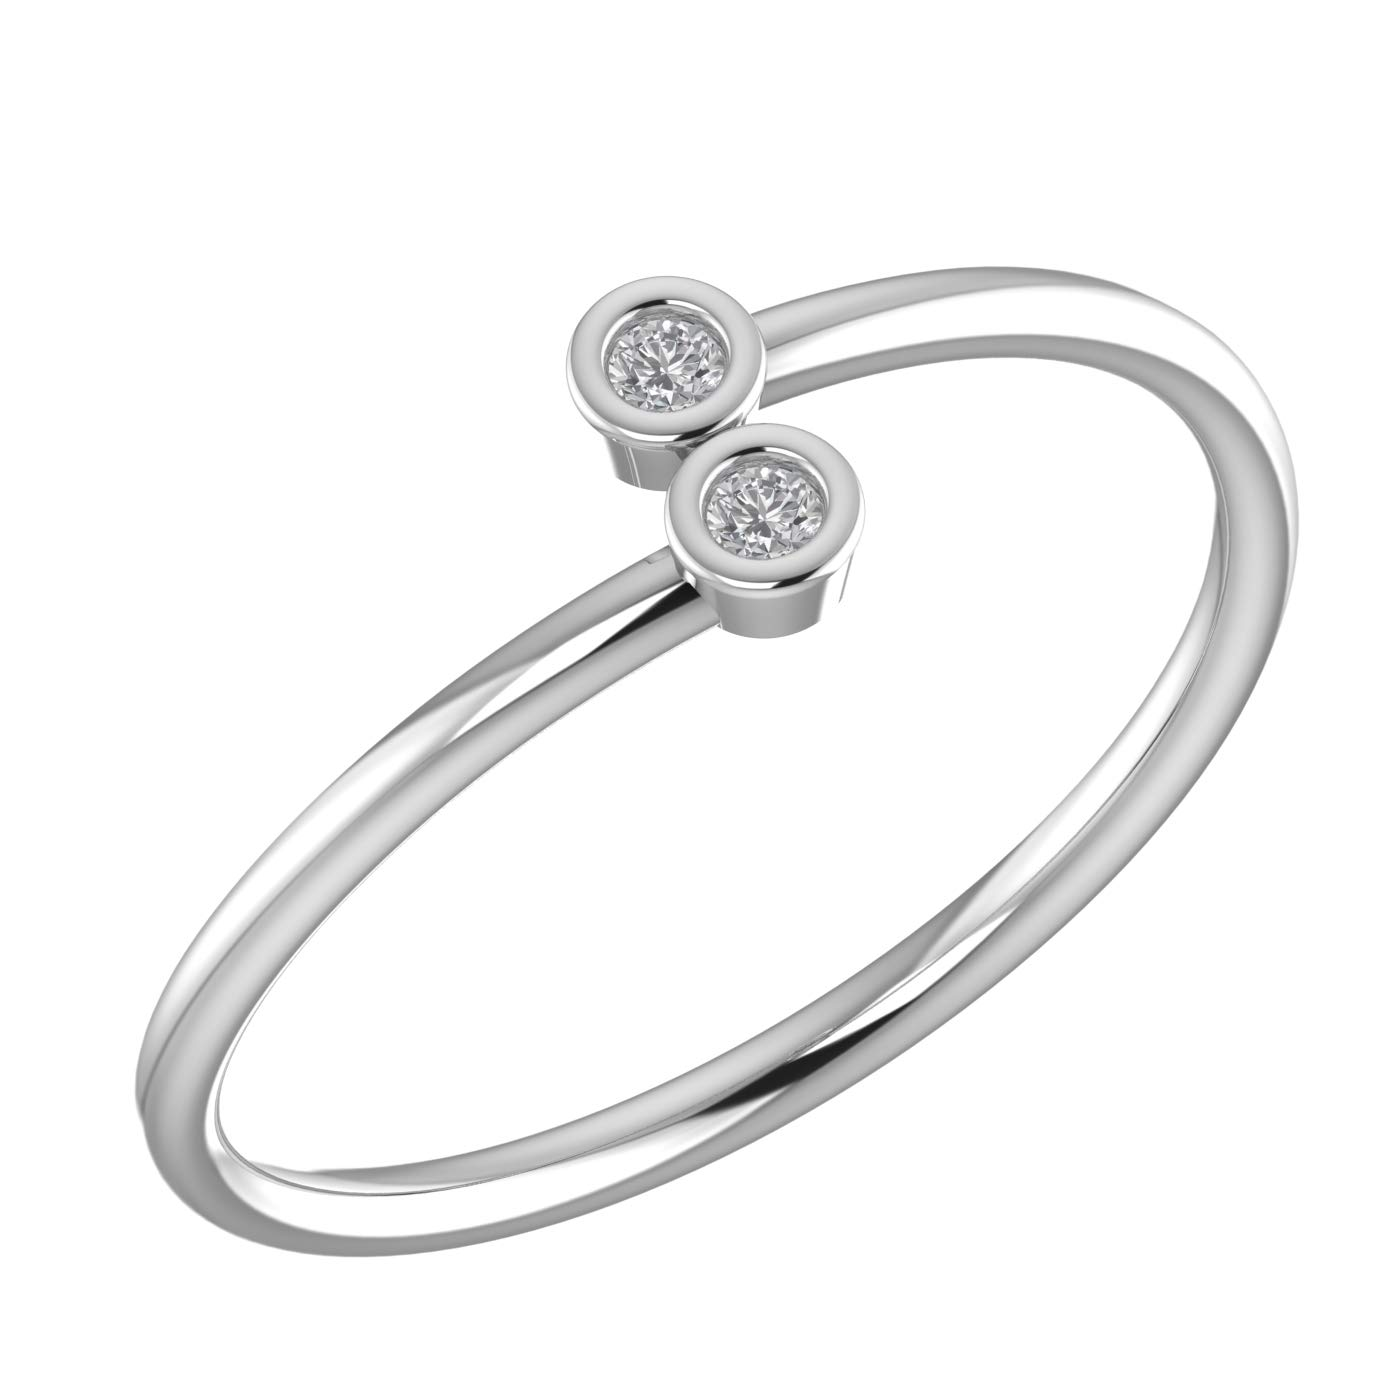 Amayra 0.06 CTW Diamond Ring - 2 Natural Round Stones in 925 Sterling Silver- Brilliant Cut(Color-GH Clarity-VS-SI)-Perfect for Bridal Promise Ring, Wedding Anniversary or Beautiful Gift